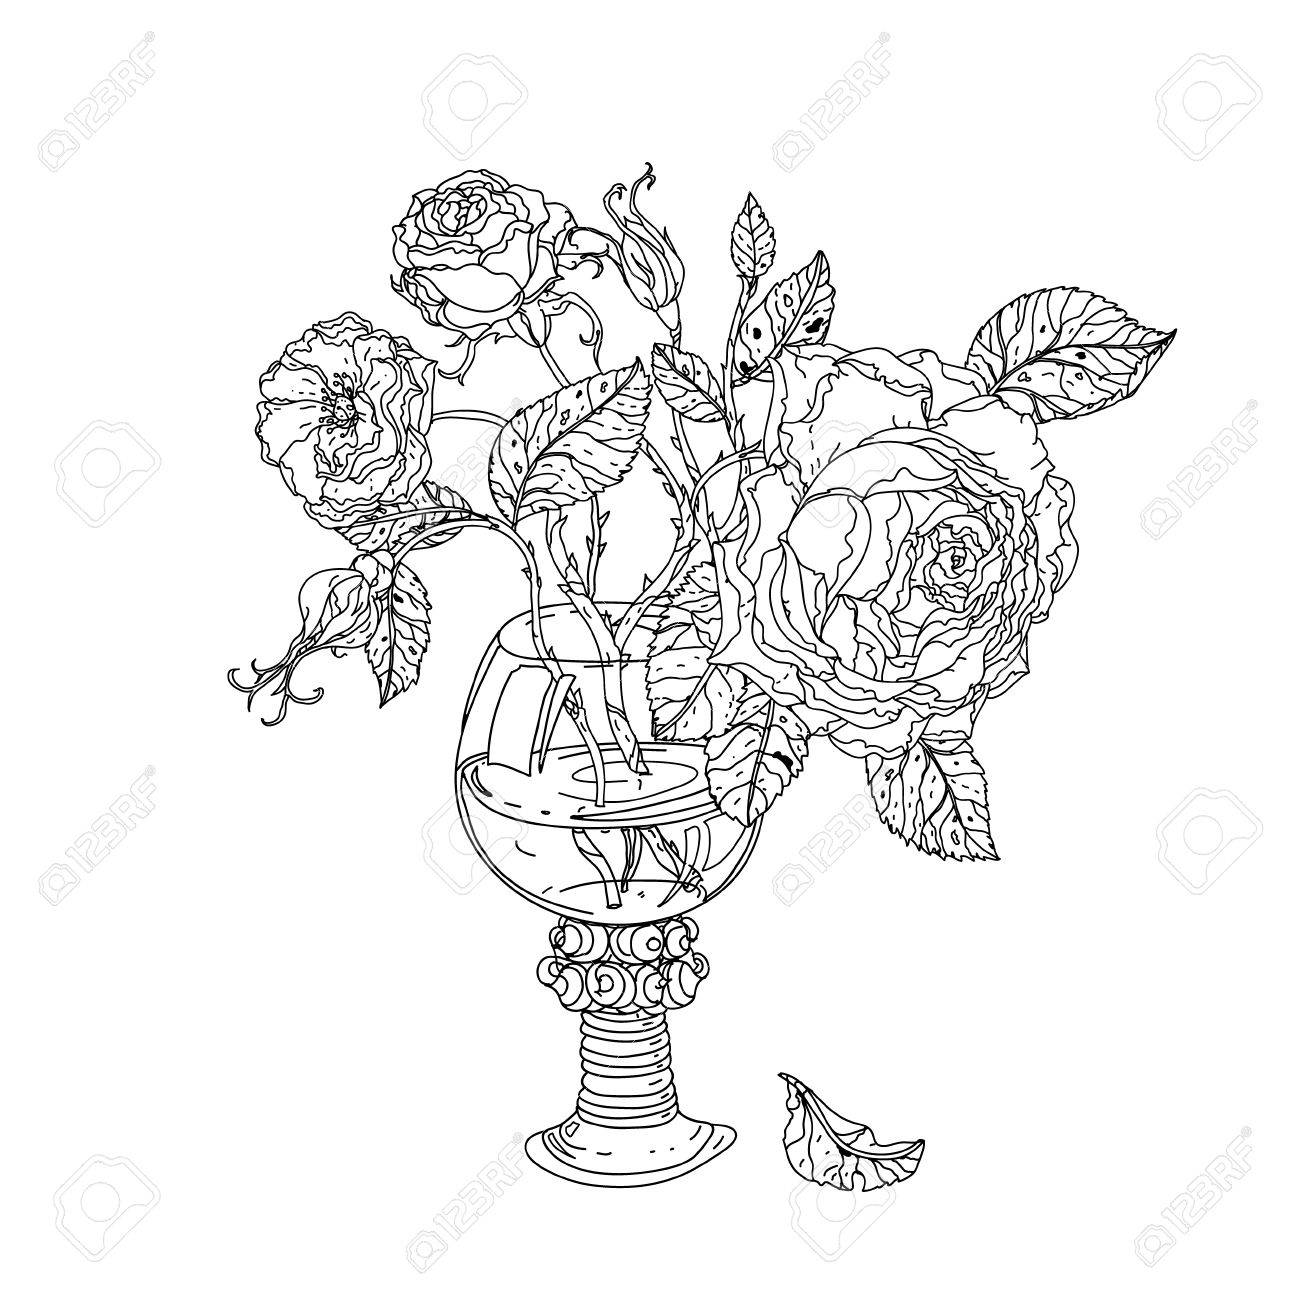 Uncolored Colouring Book Style, Roses In Zenart Style, Could ...